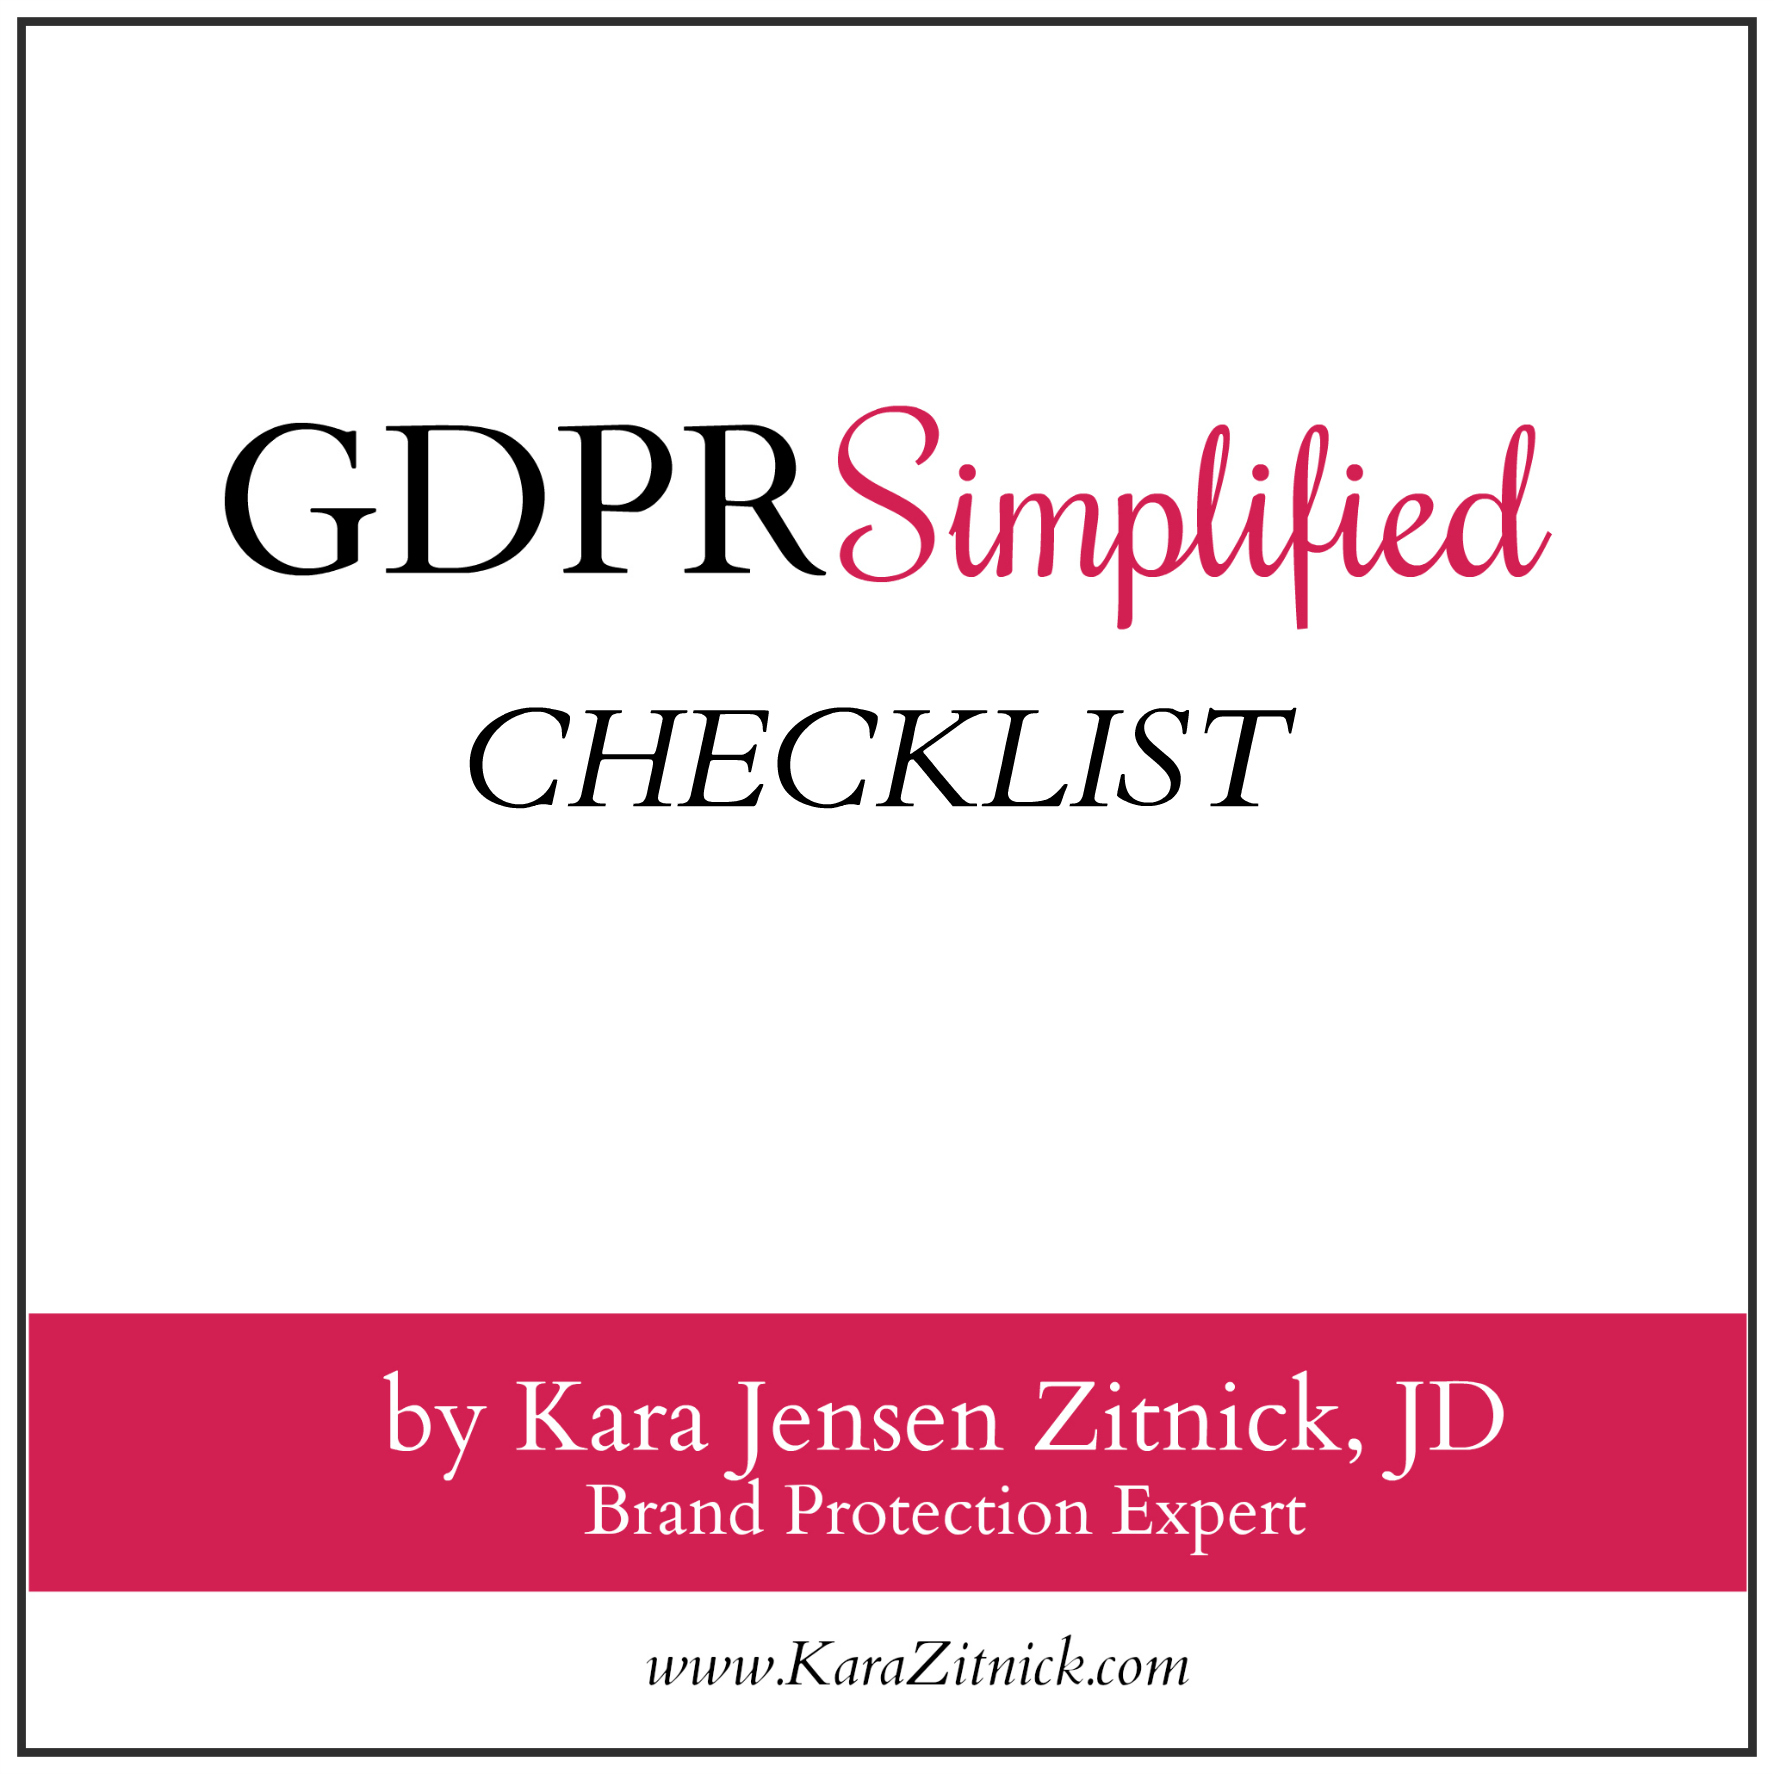 Free Download - CLICK THE DOWNLOAD BUTTON BELOW TO ACCESS THE CHECKLIST